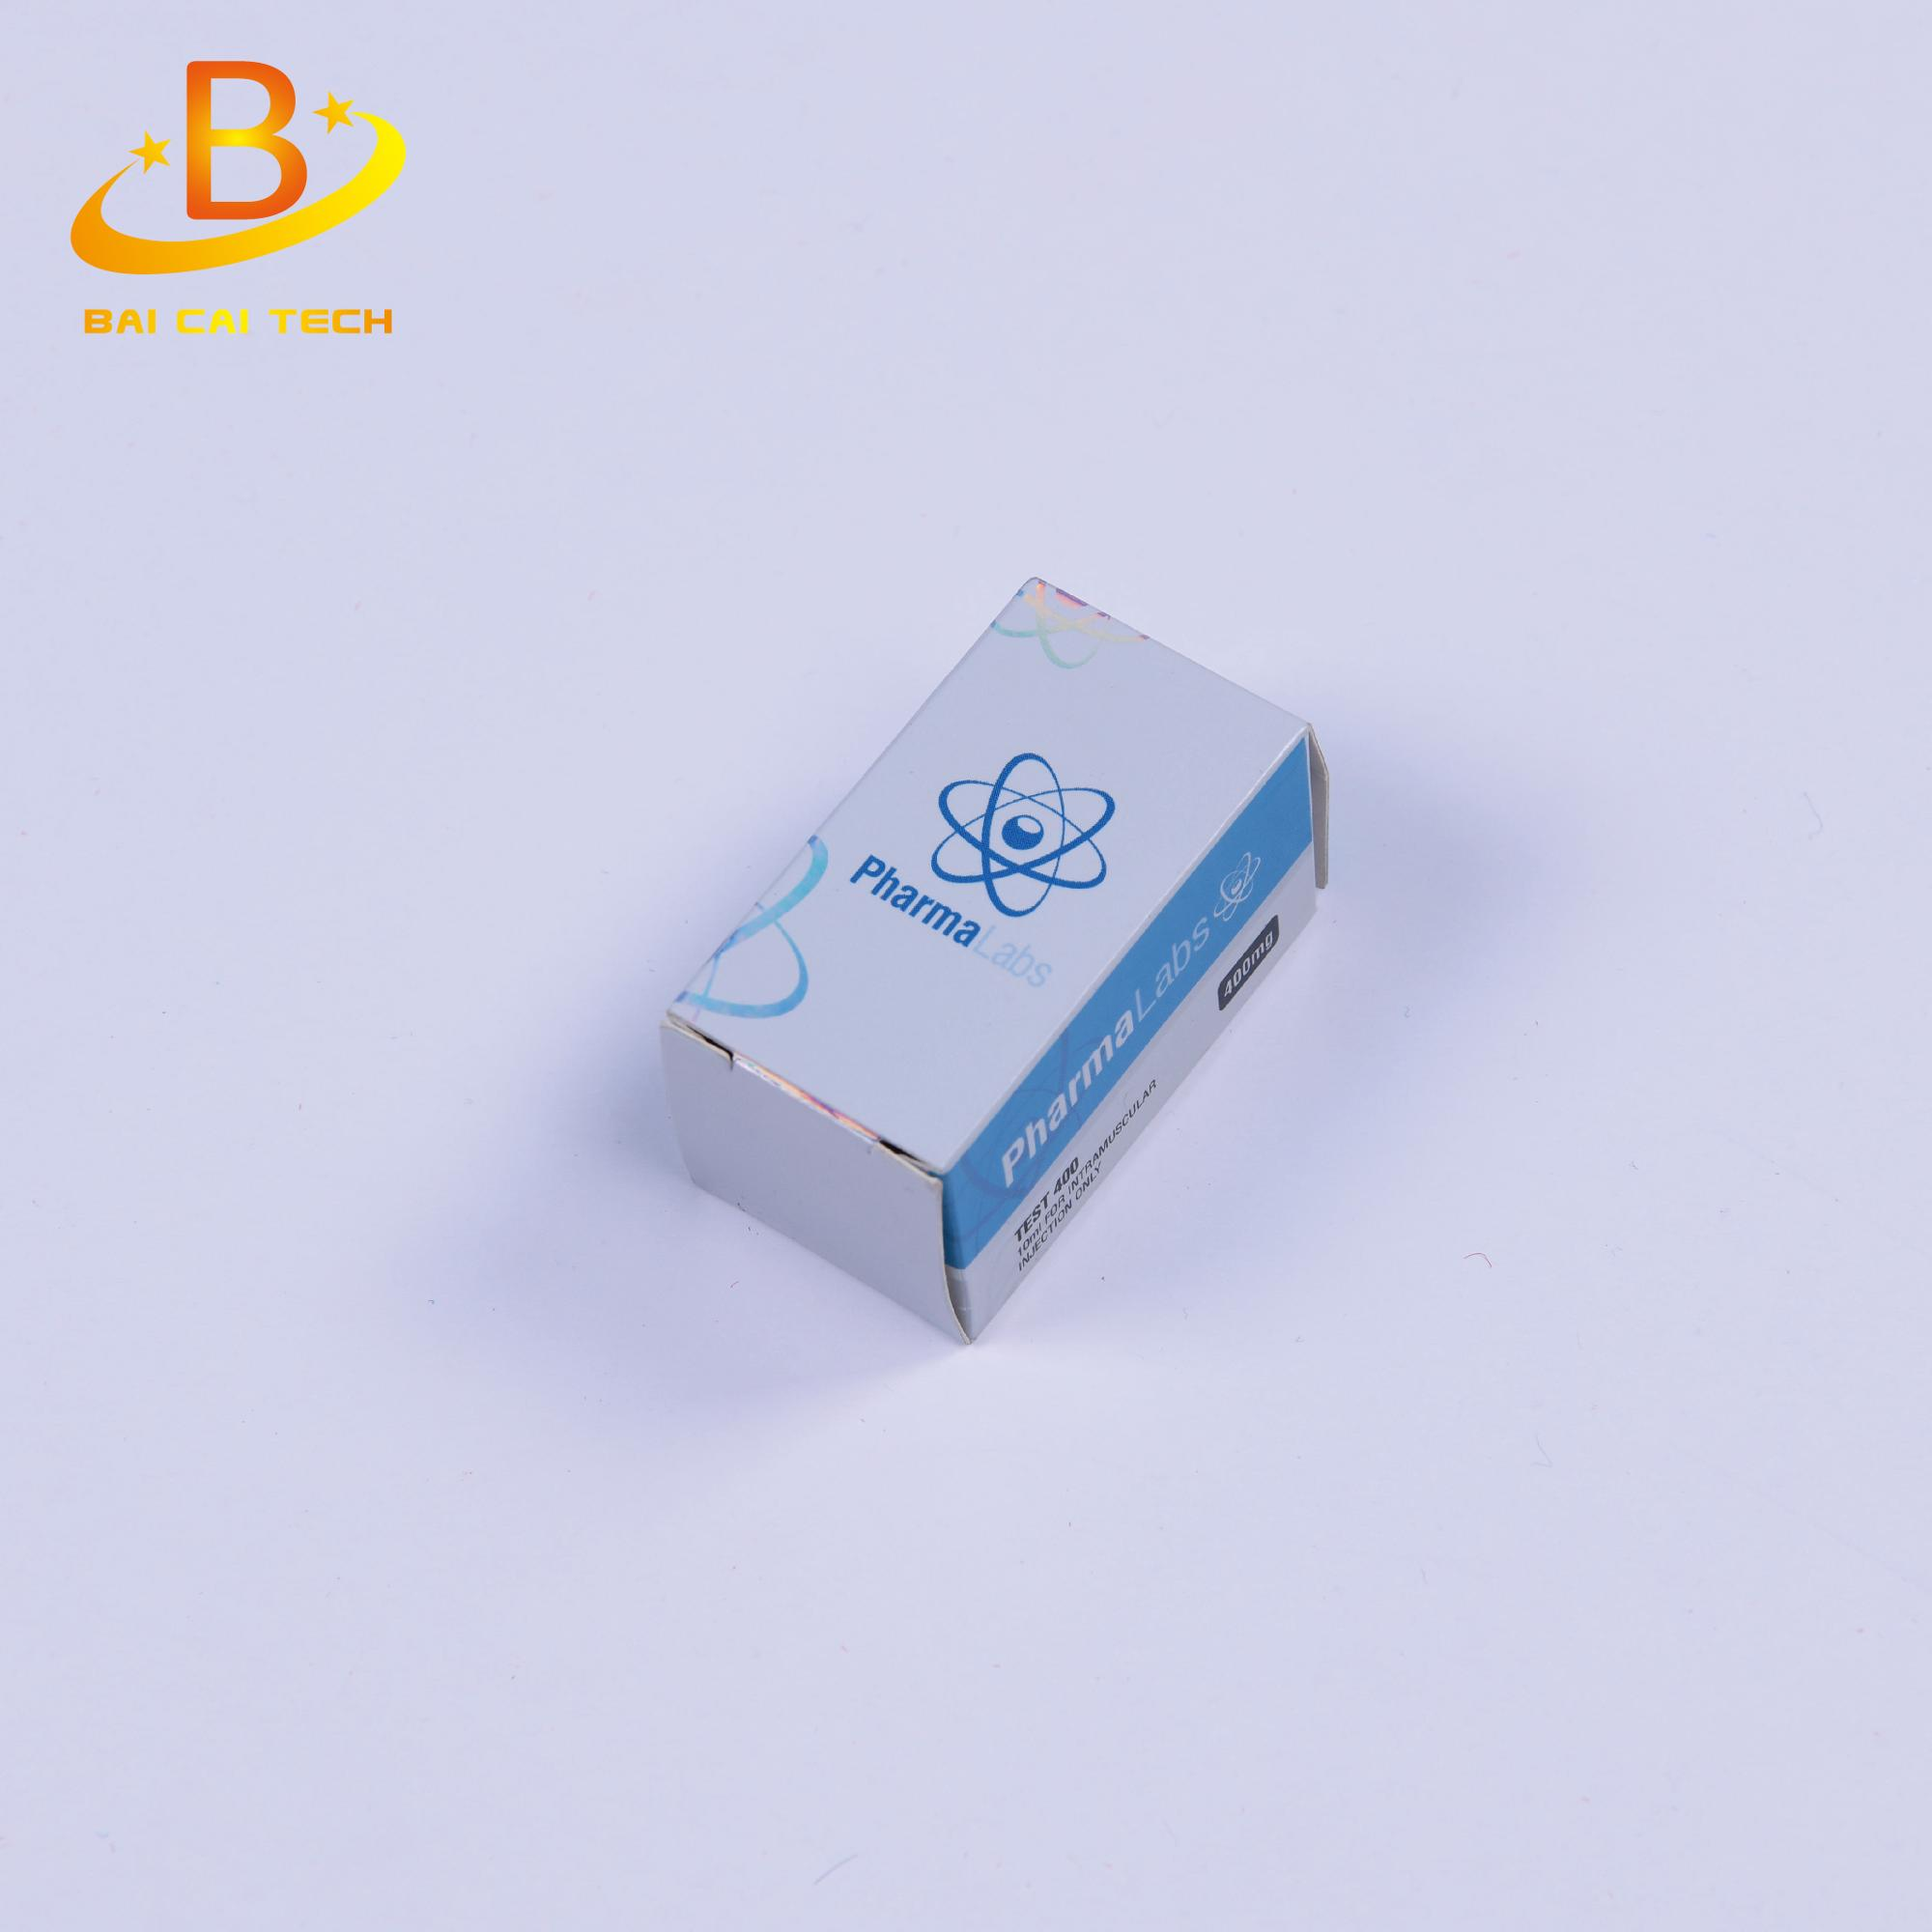 Wholesale alibaba customized color and logo printed 2ml/5ml/10ml vial box